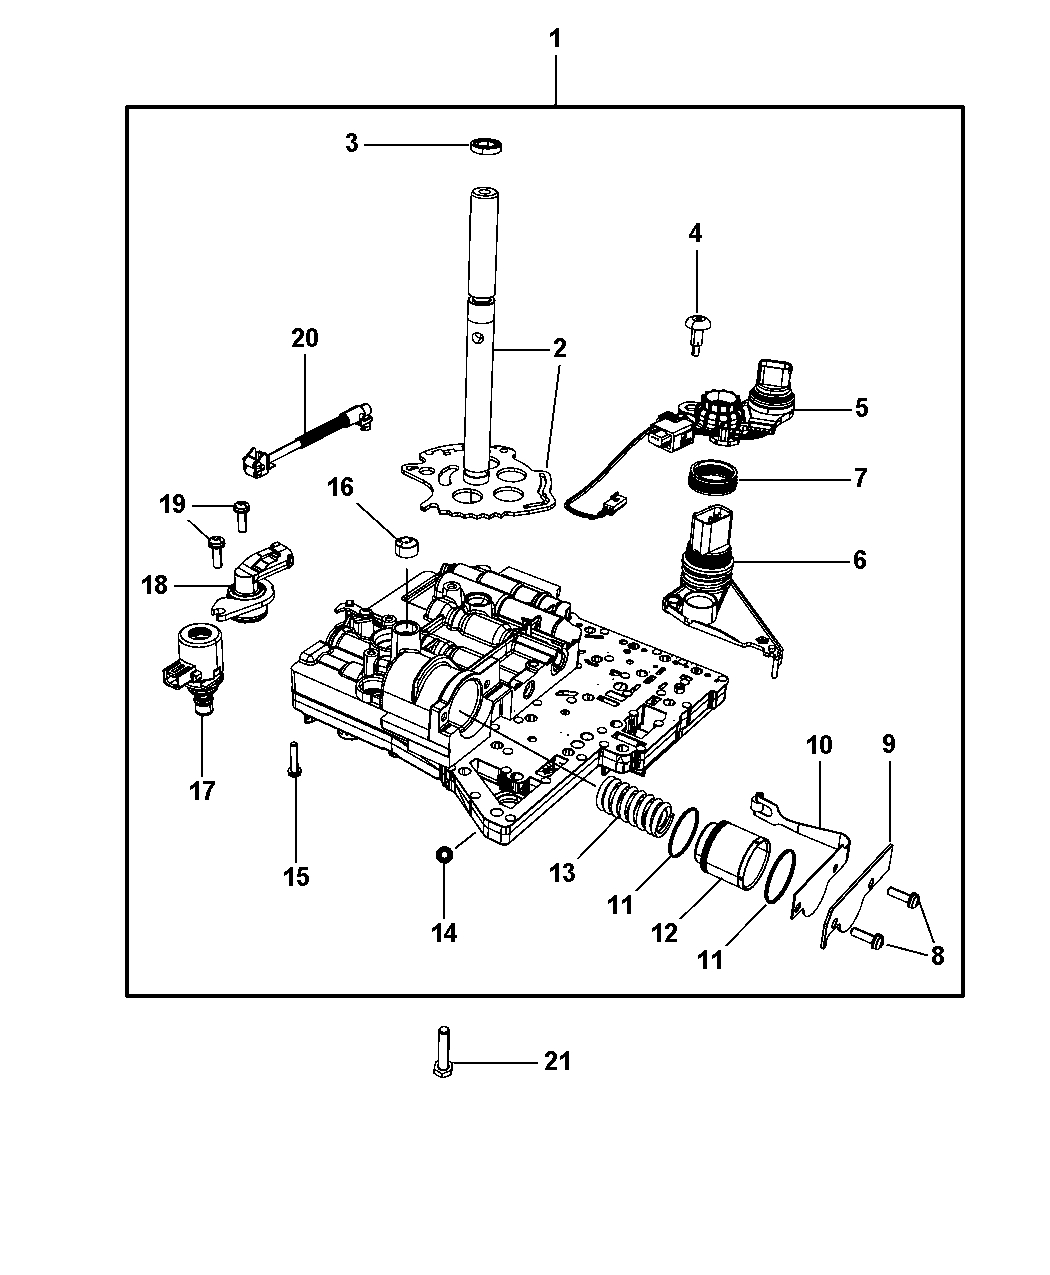 Valve body related parts for 2008 chrysler town country within chrysler town